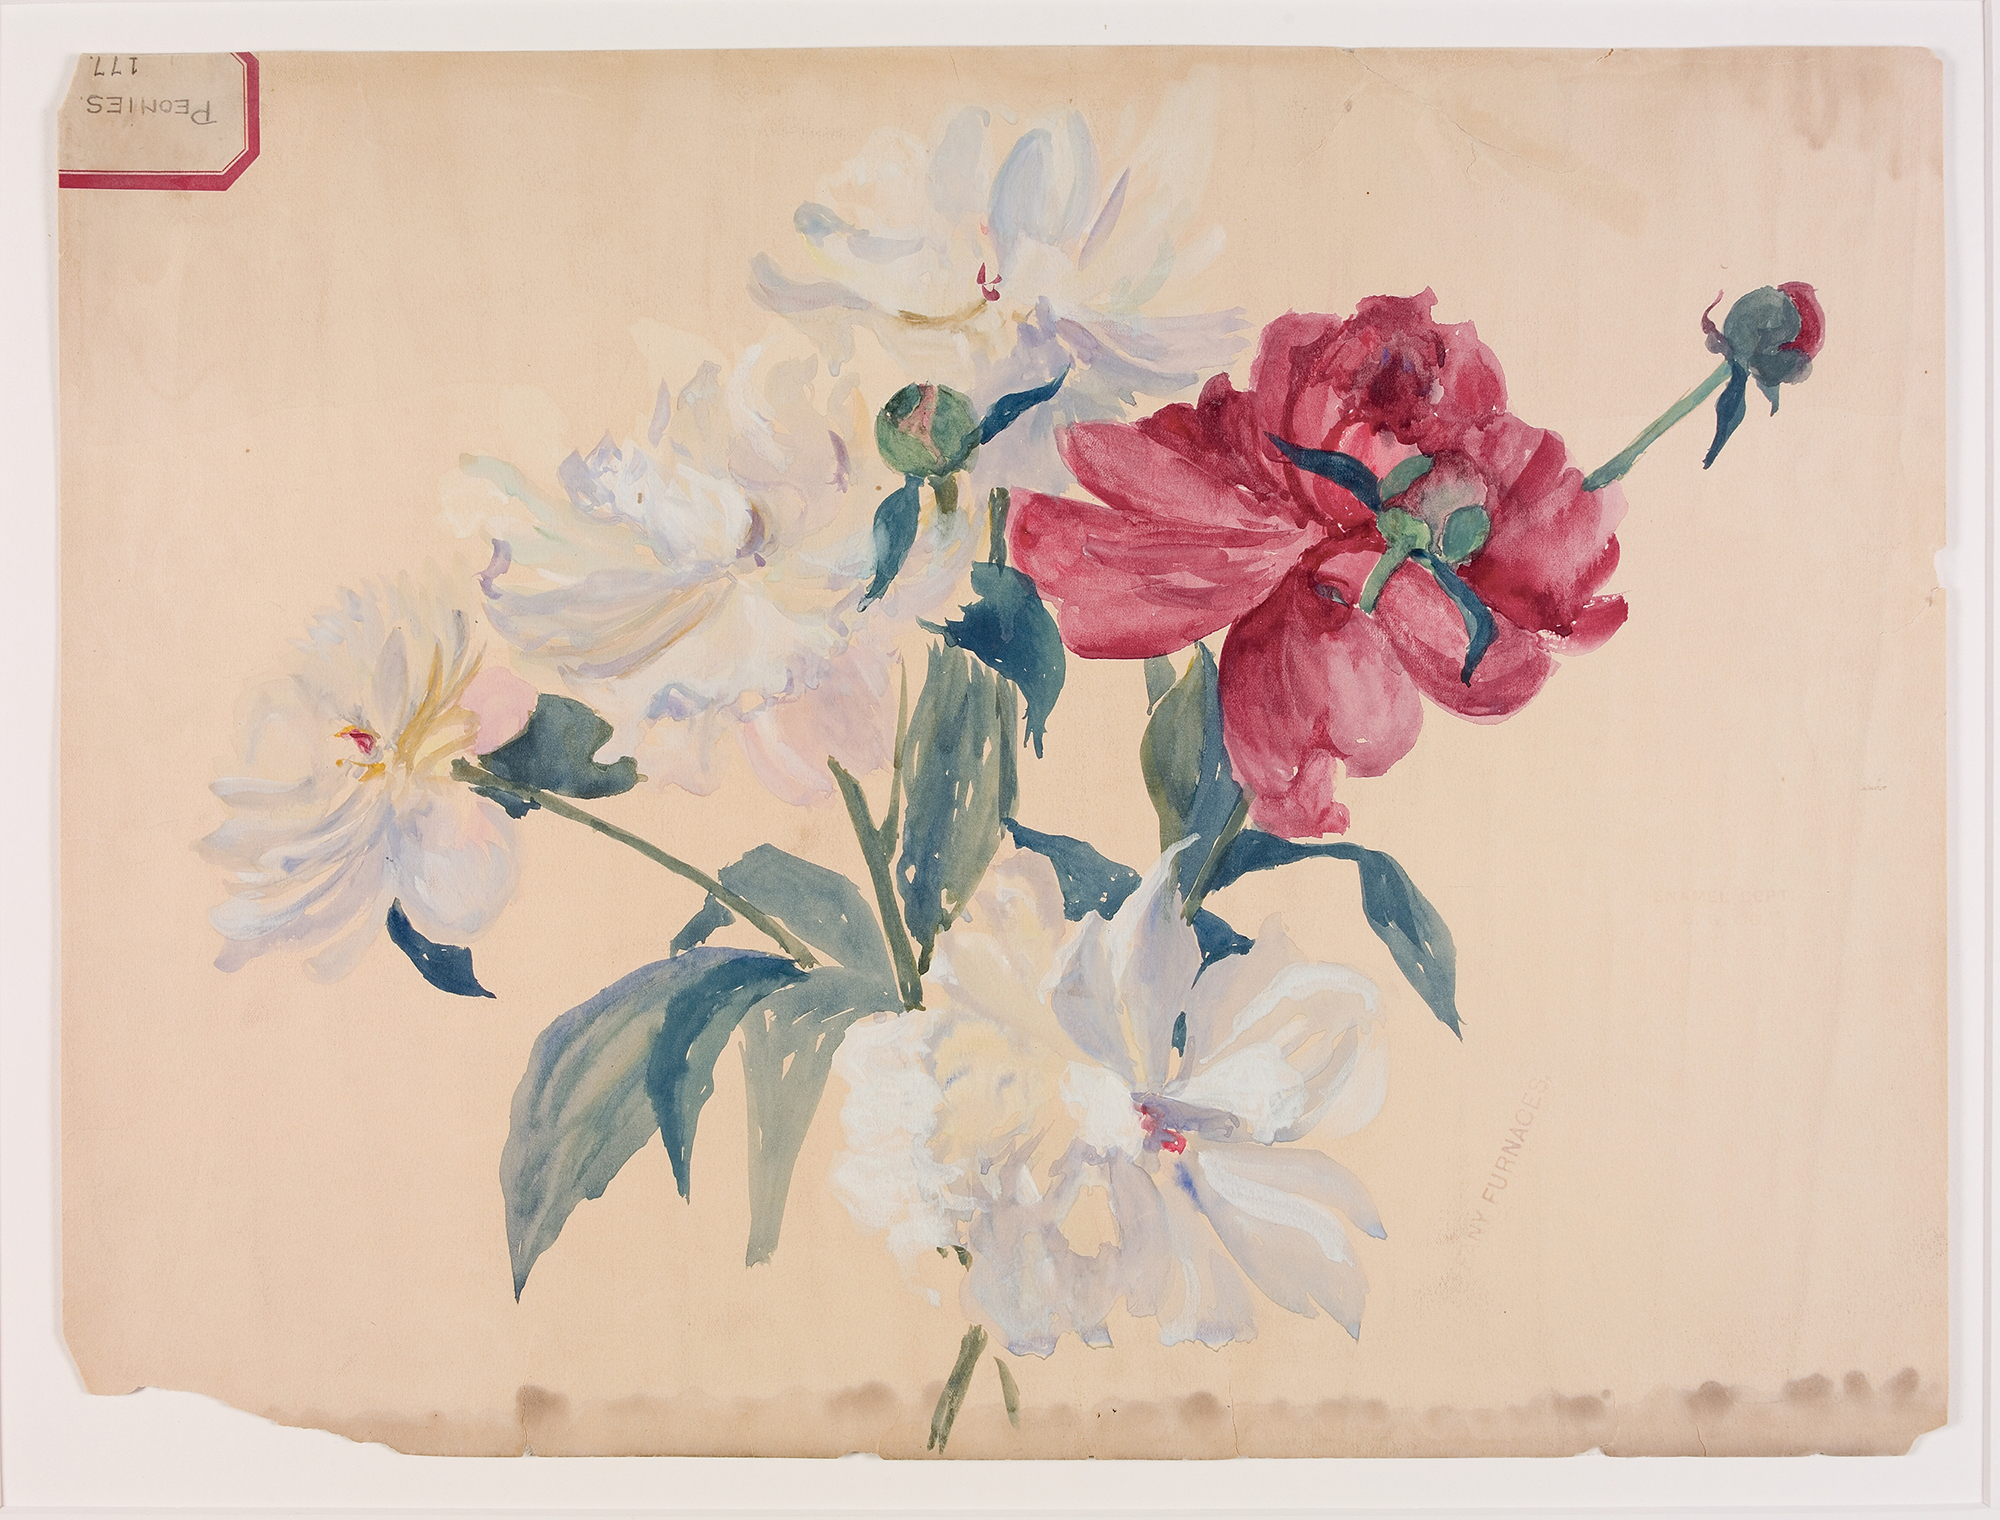 Peonies 177, Alice Gouvy or Lillian Palmié, Tiffany Furnaces, Corona, New York, about 1902. CMGL 89004.